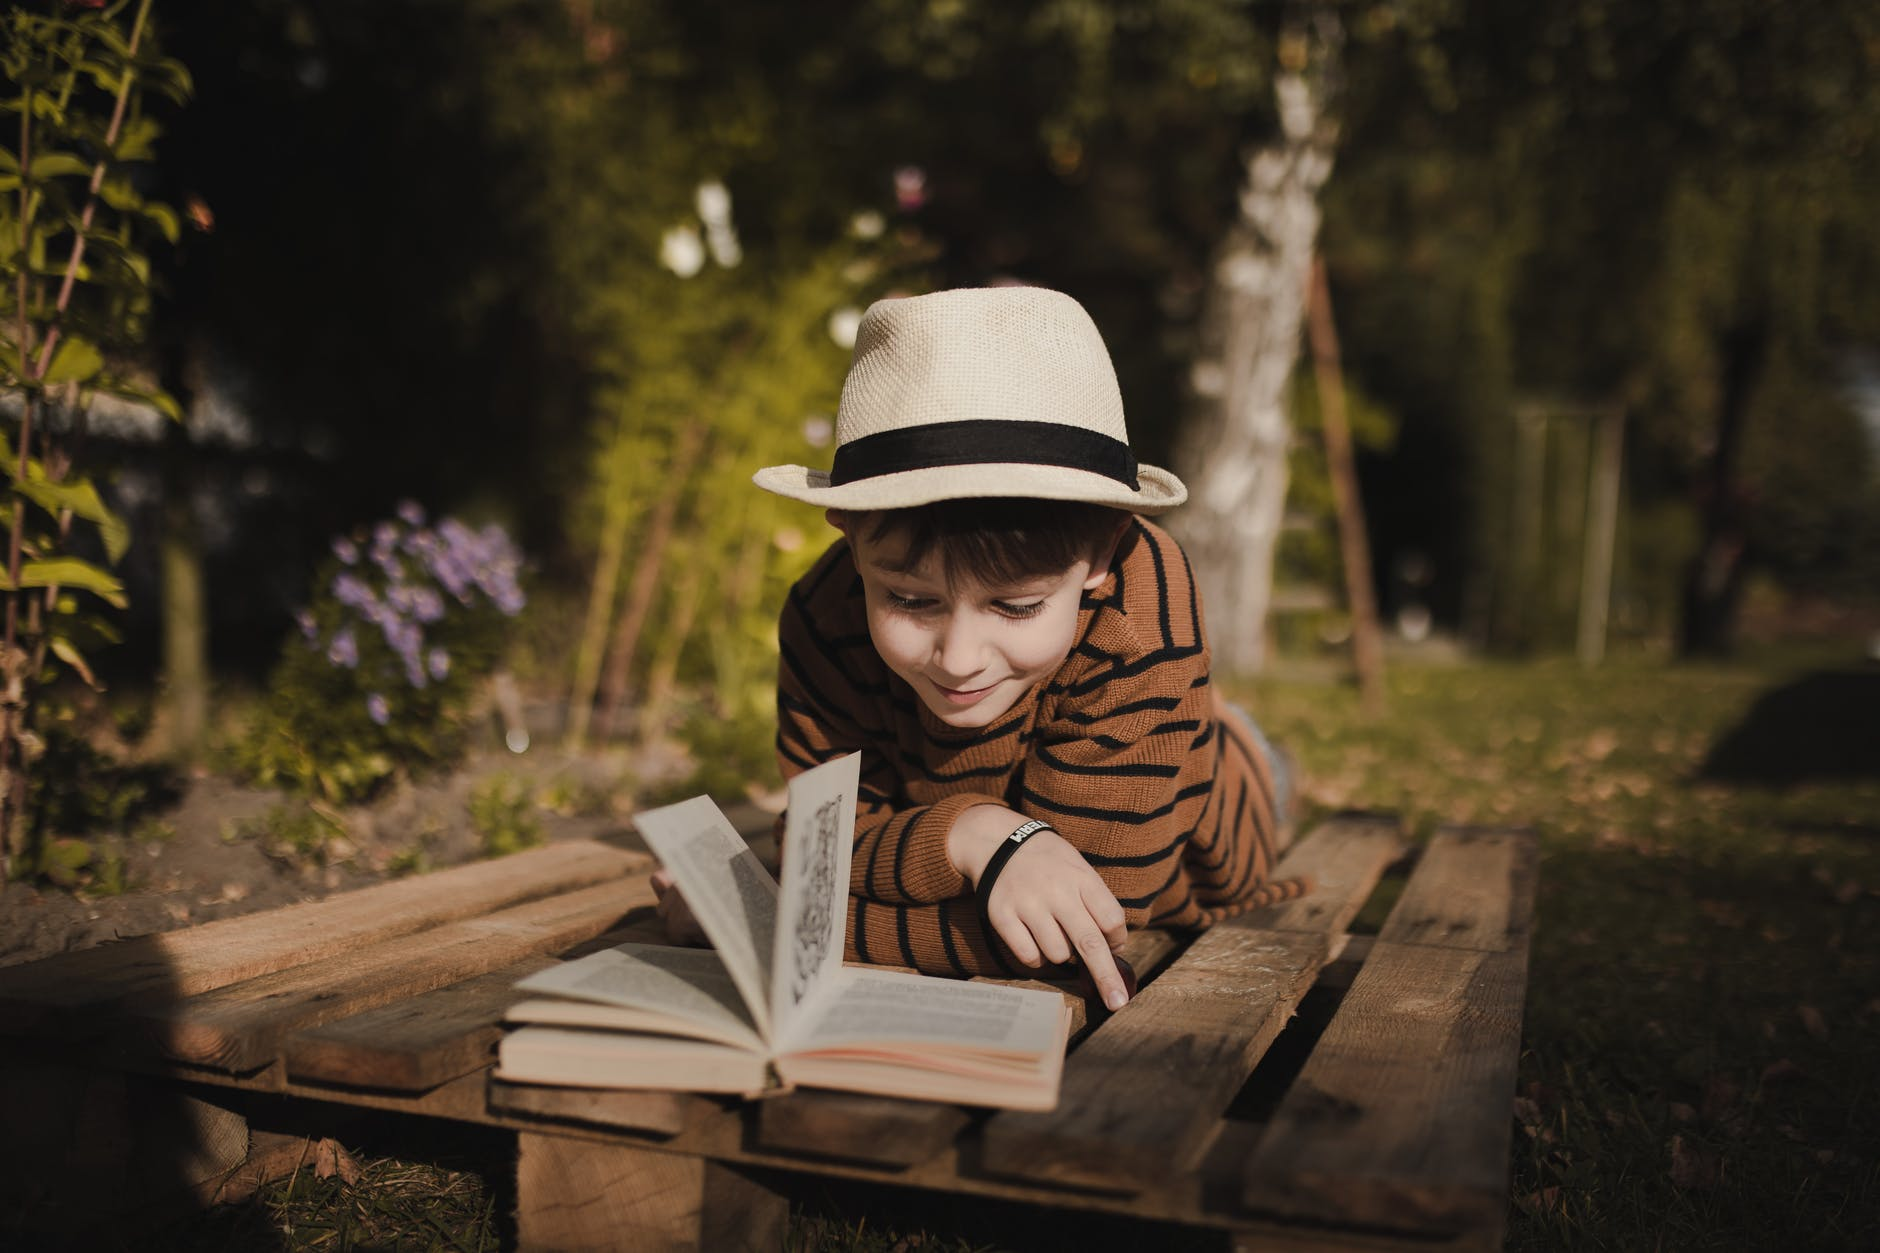 smiling boy reading book on bench in park